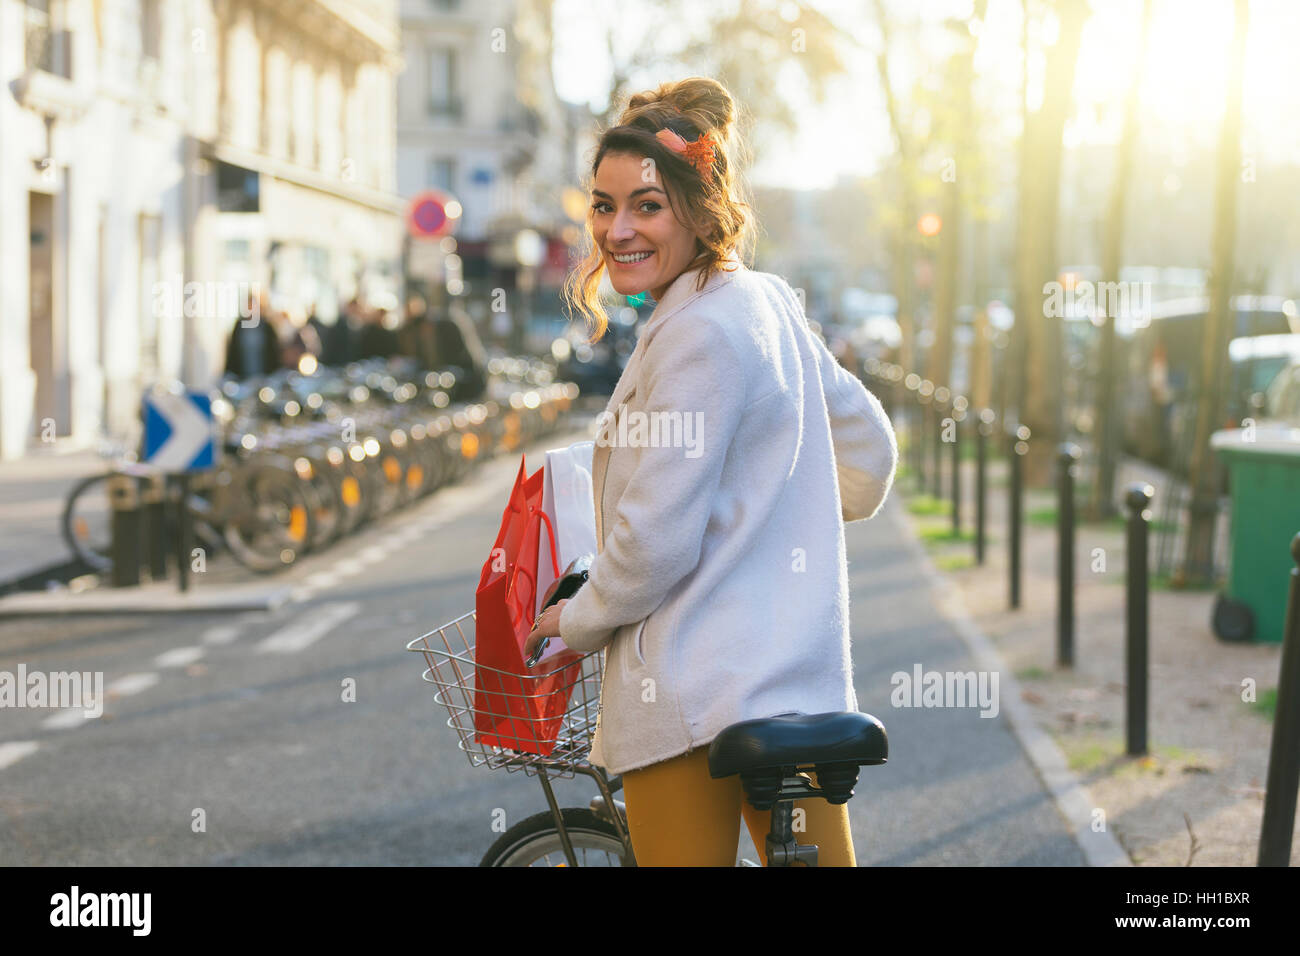 Paris, Woman riding a Velib in Paris street - Stock Image